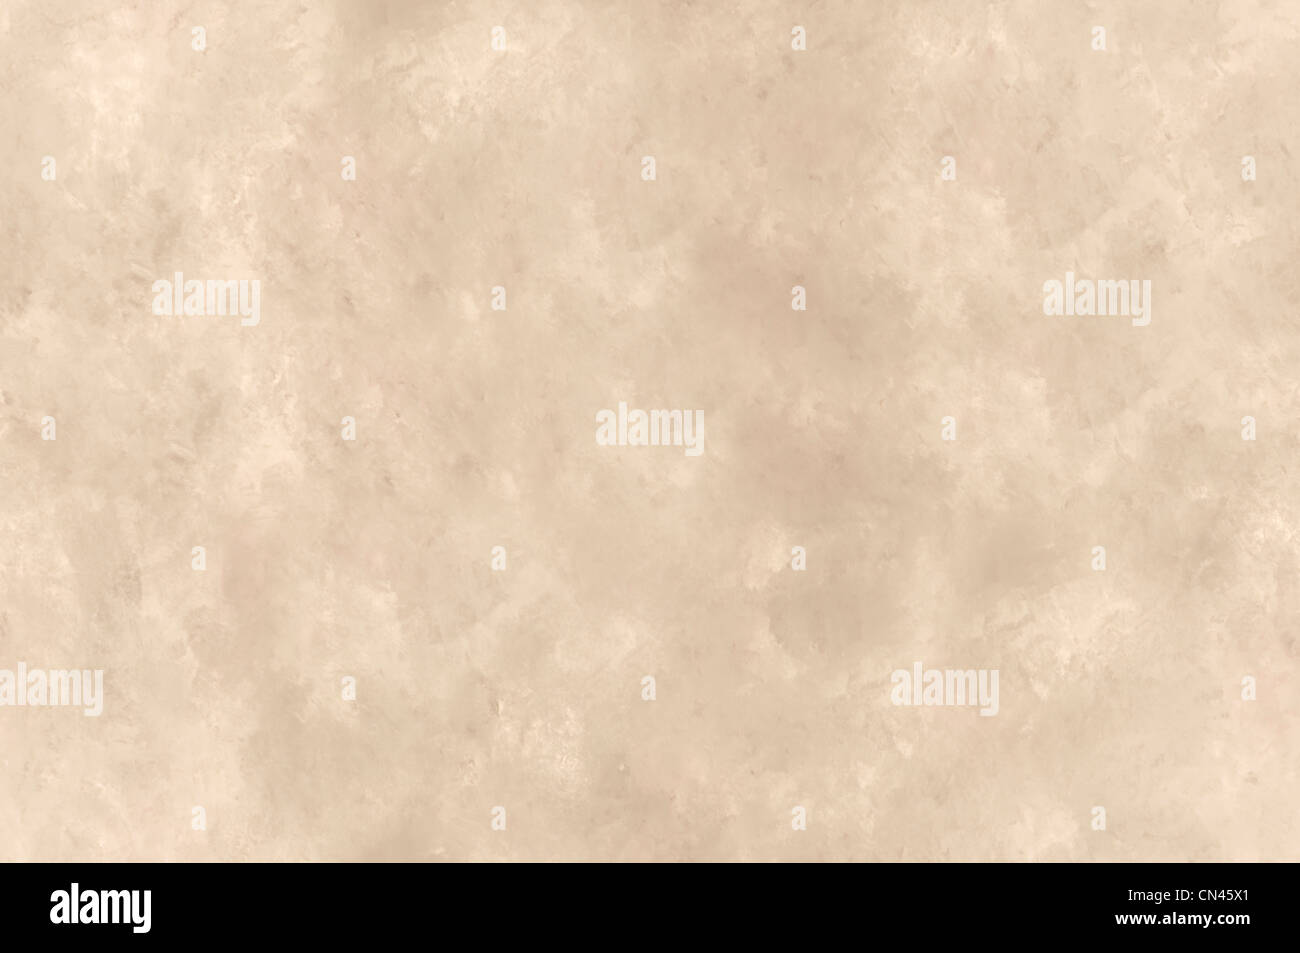 Grungy mottled canvas background seamlessly tileable - Stock Image